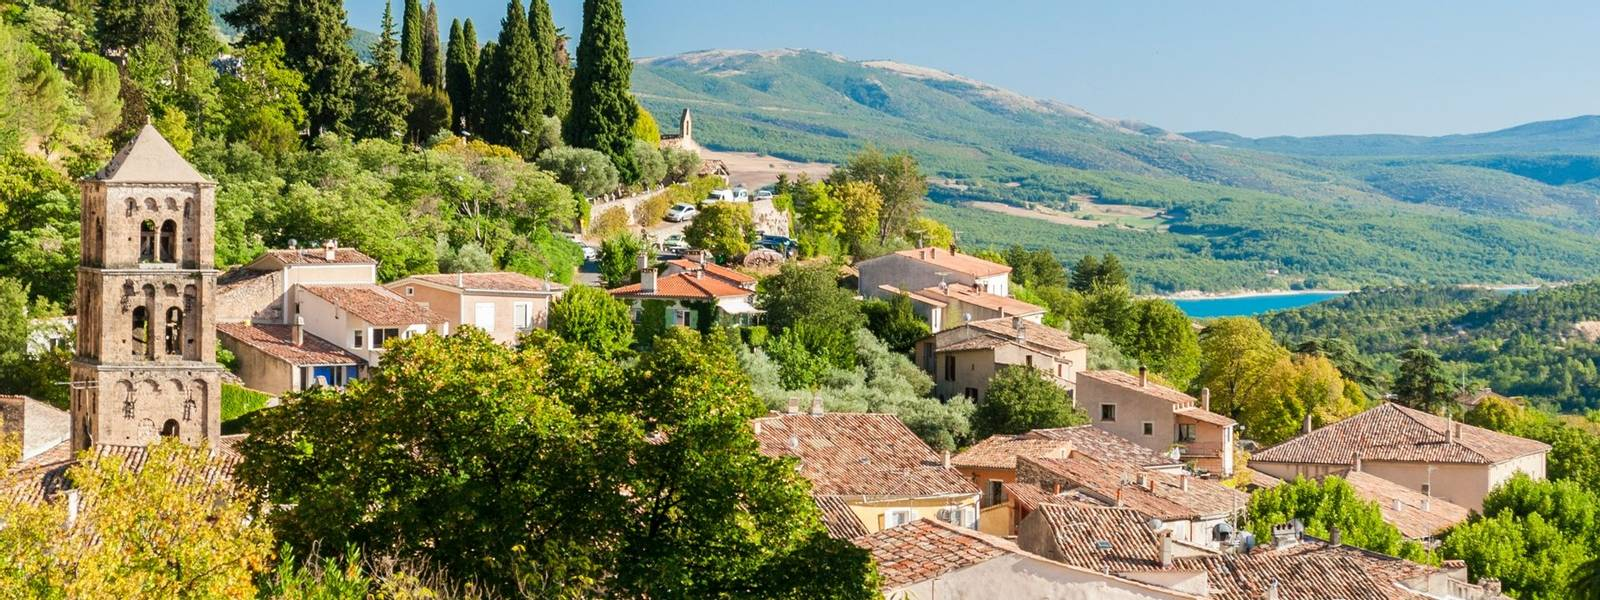 The village of Moustiers-Sainte-Marie in Provence (France)